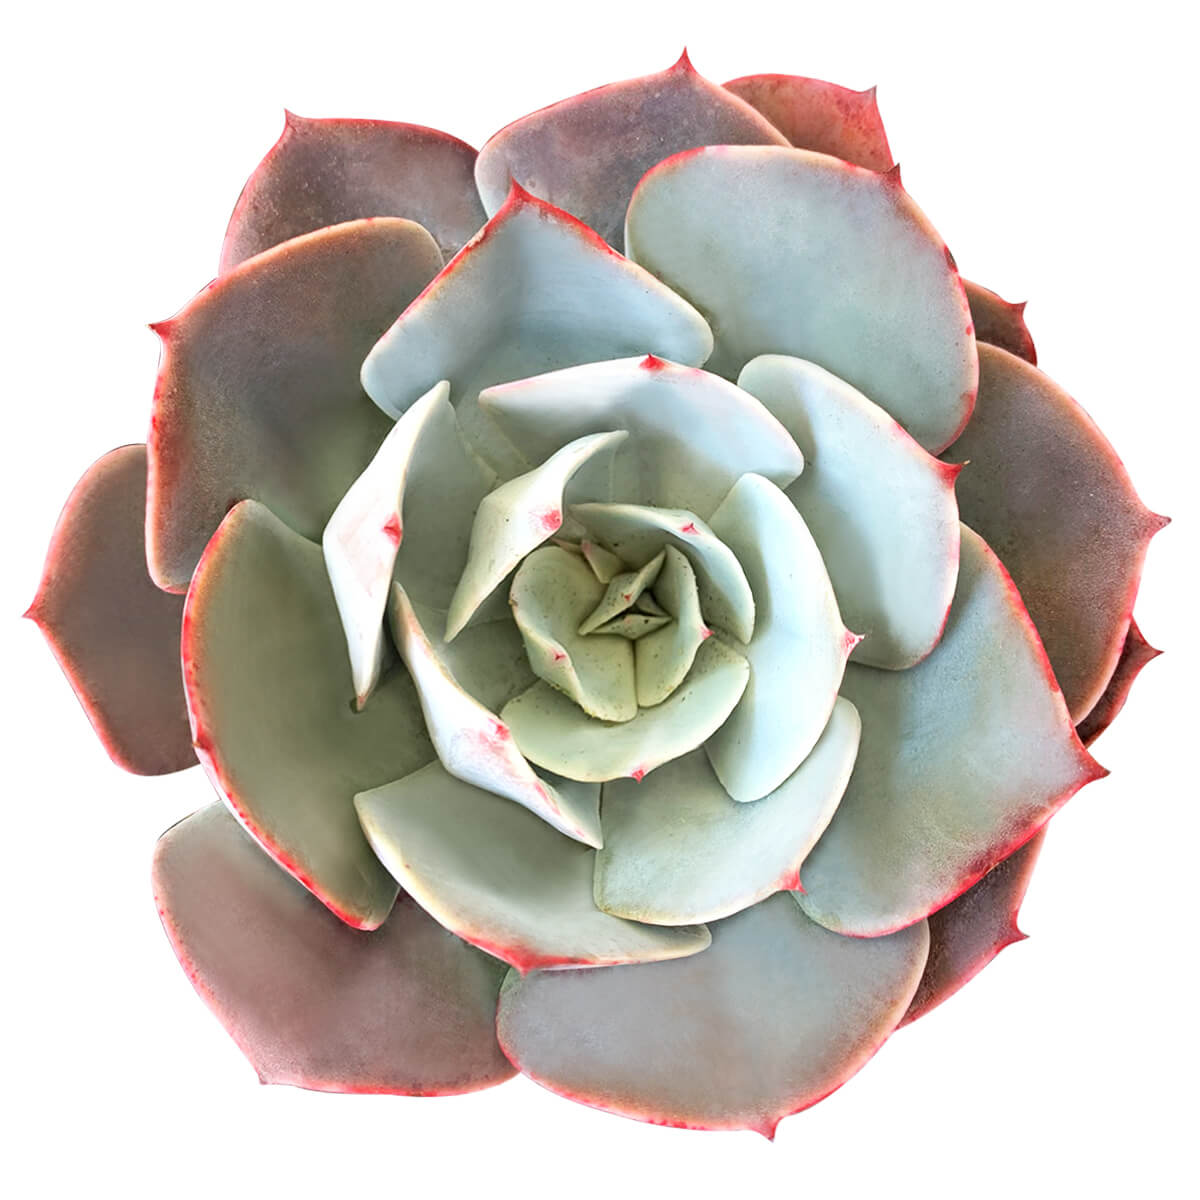 Echeveria White Rose for sale, cactus, succulents garden, monthly succulents, succulent care, how to grow succulents, succulent plant, Rare succulents, indoor succulents, Echeveria White Rose  in California, How to grow Echeveria White Rose, Thanksgiving succulents gift, Easter succulents idea, Growing succulents for thanksgiving